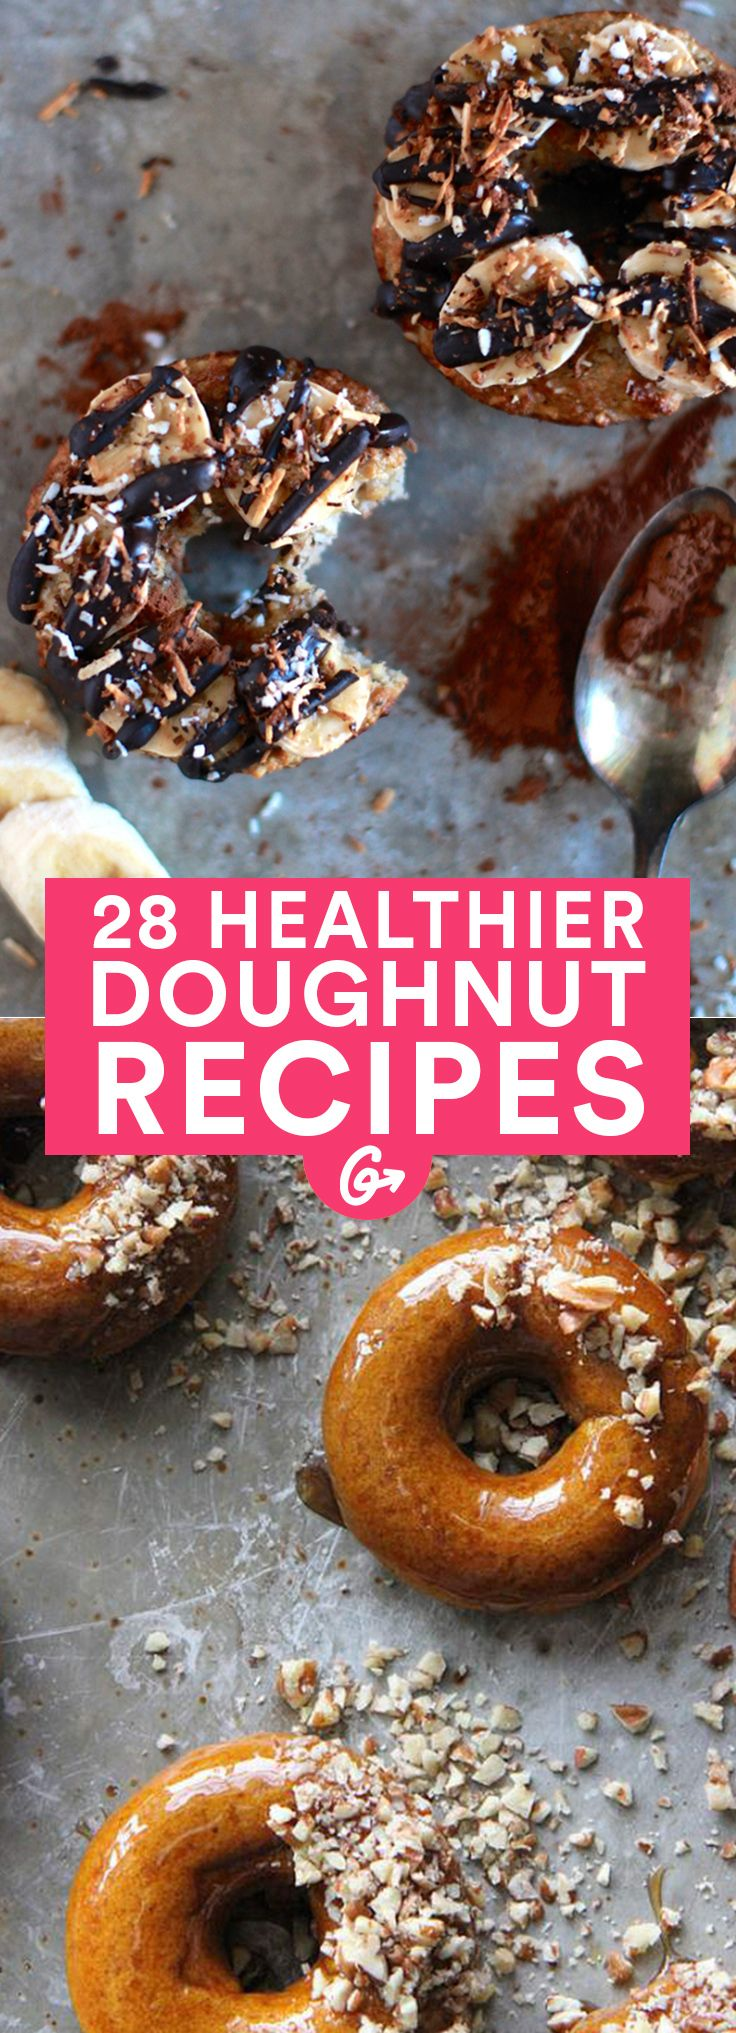 Who doesn't love a good doughnut? #healthy #doughnut #recipes http://greatist.com/health/healthier-donut-recipes